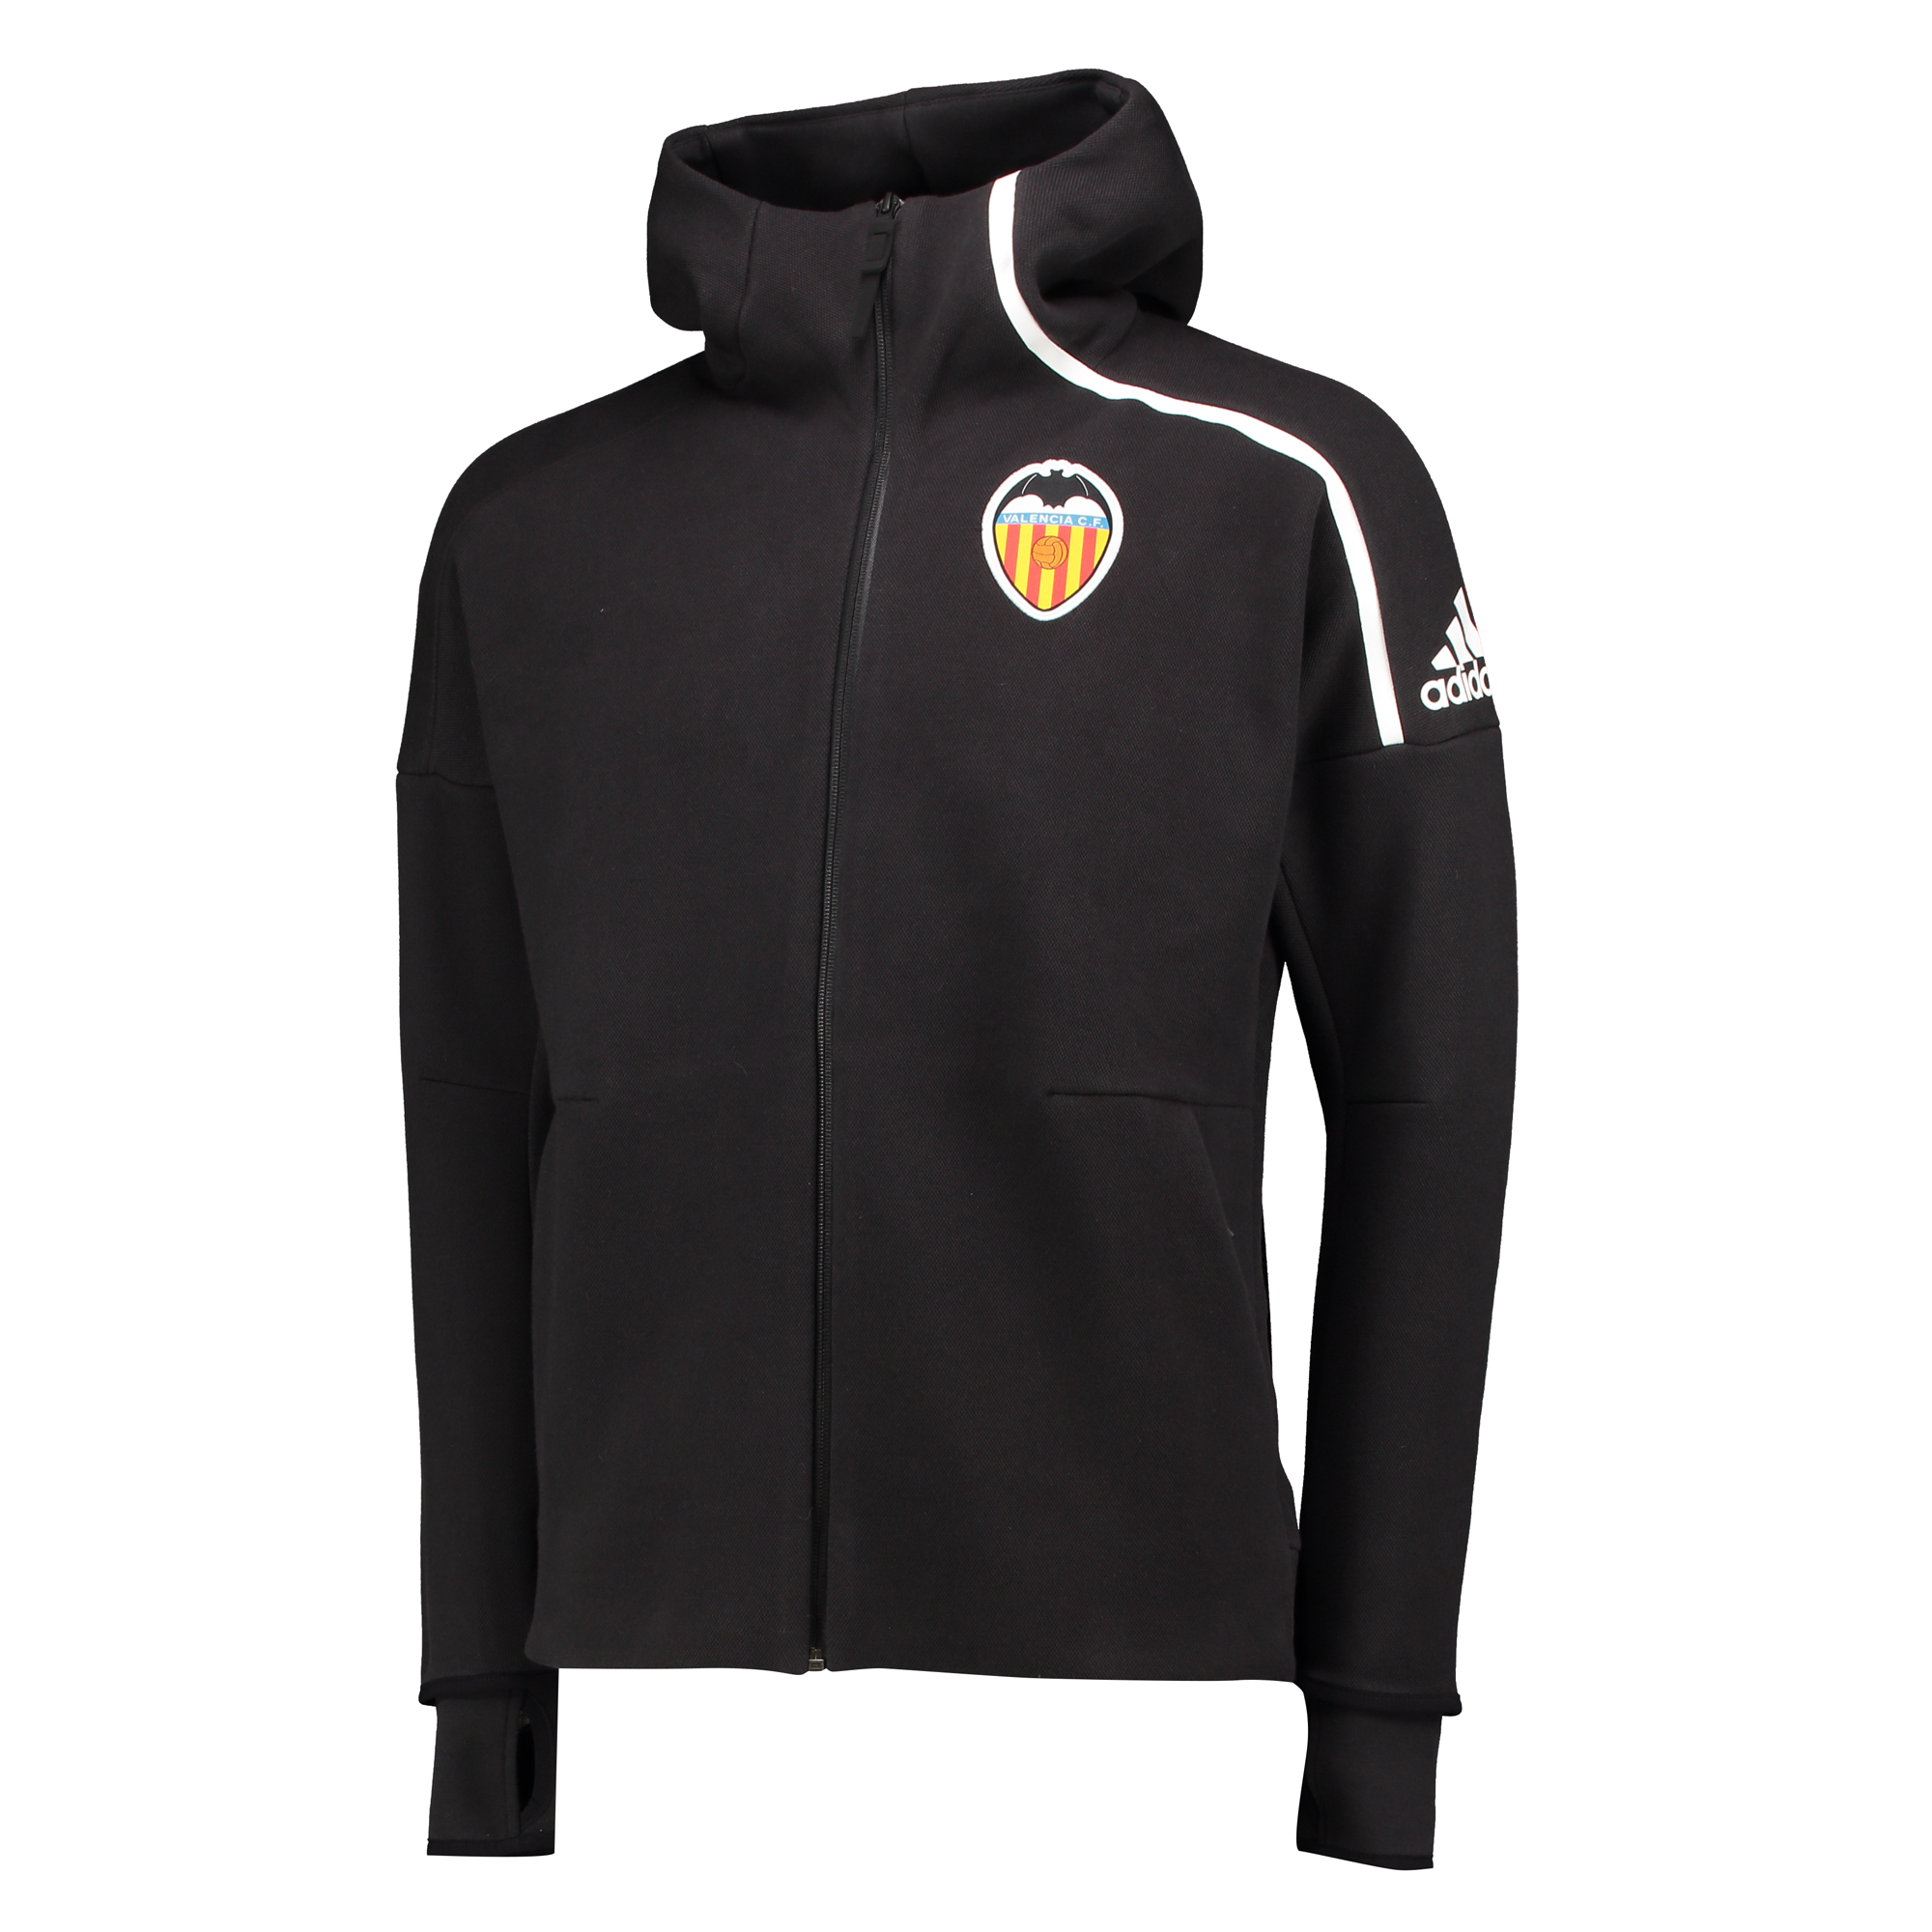 Valencia CF Anthem Jacket - Black/White